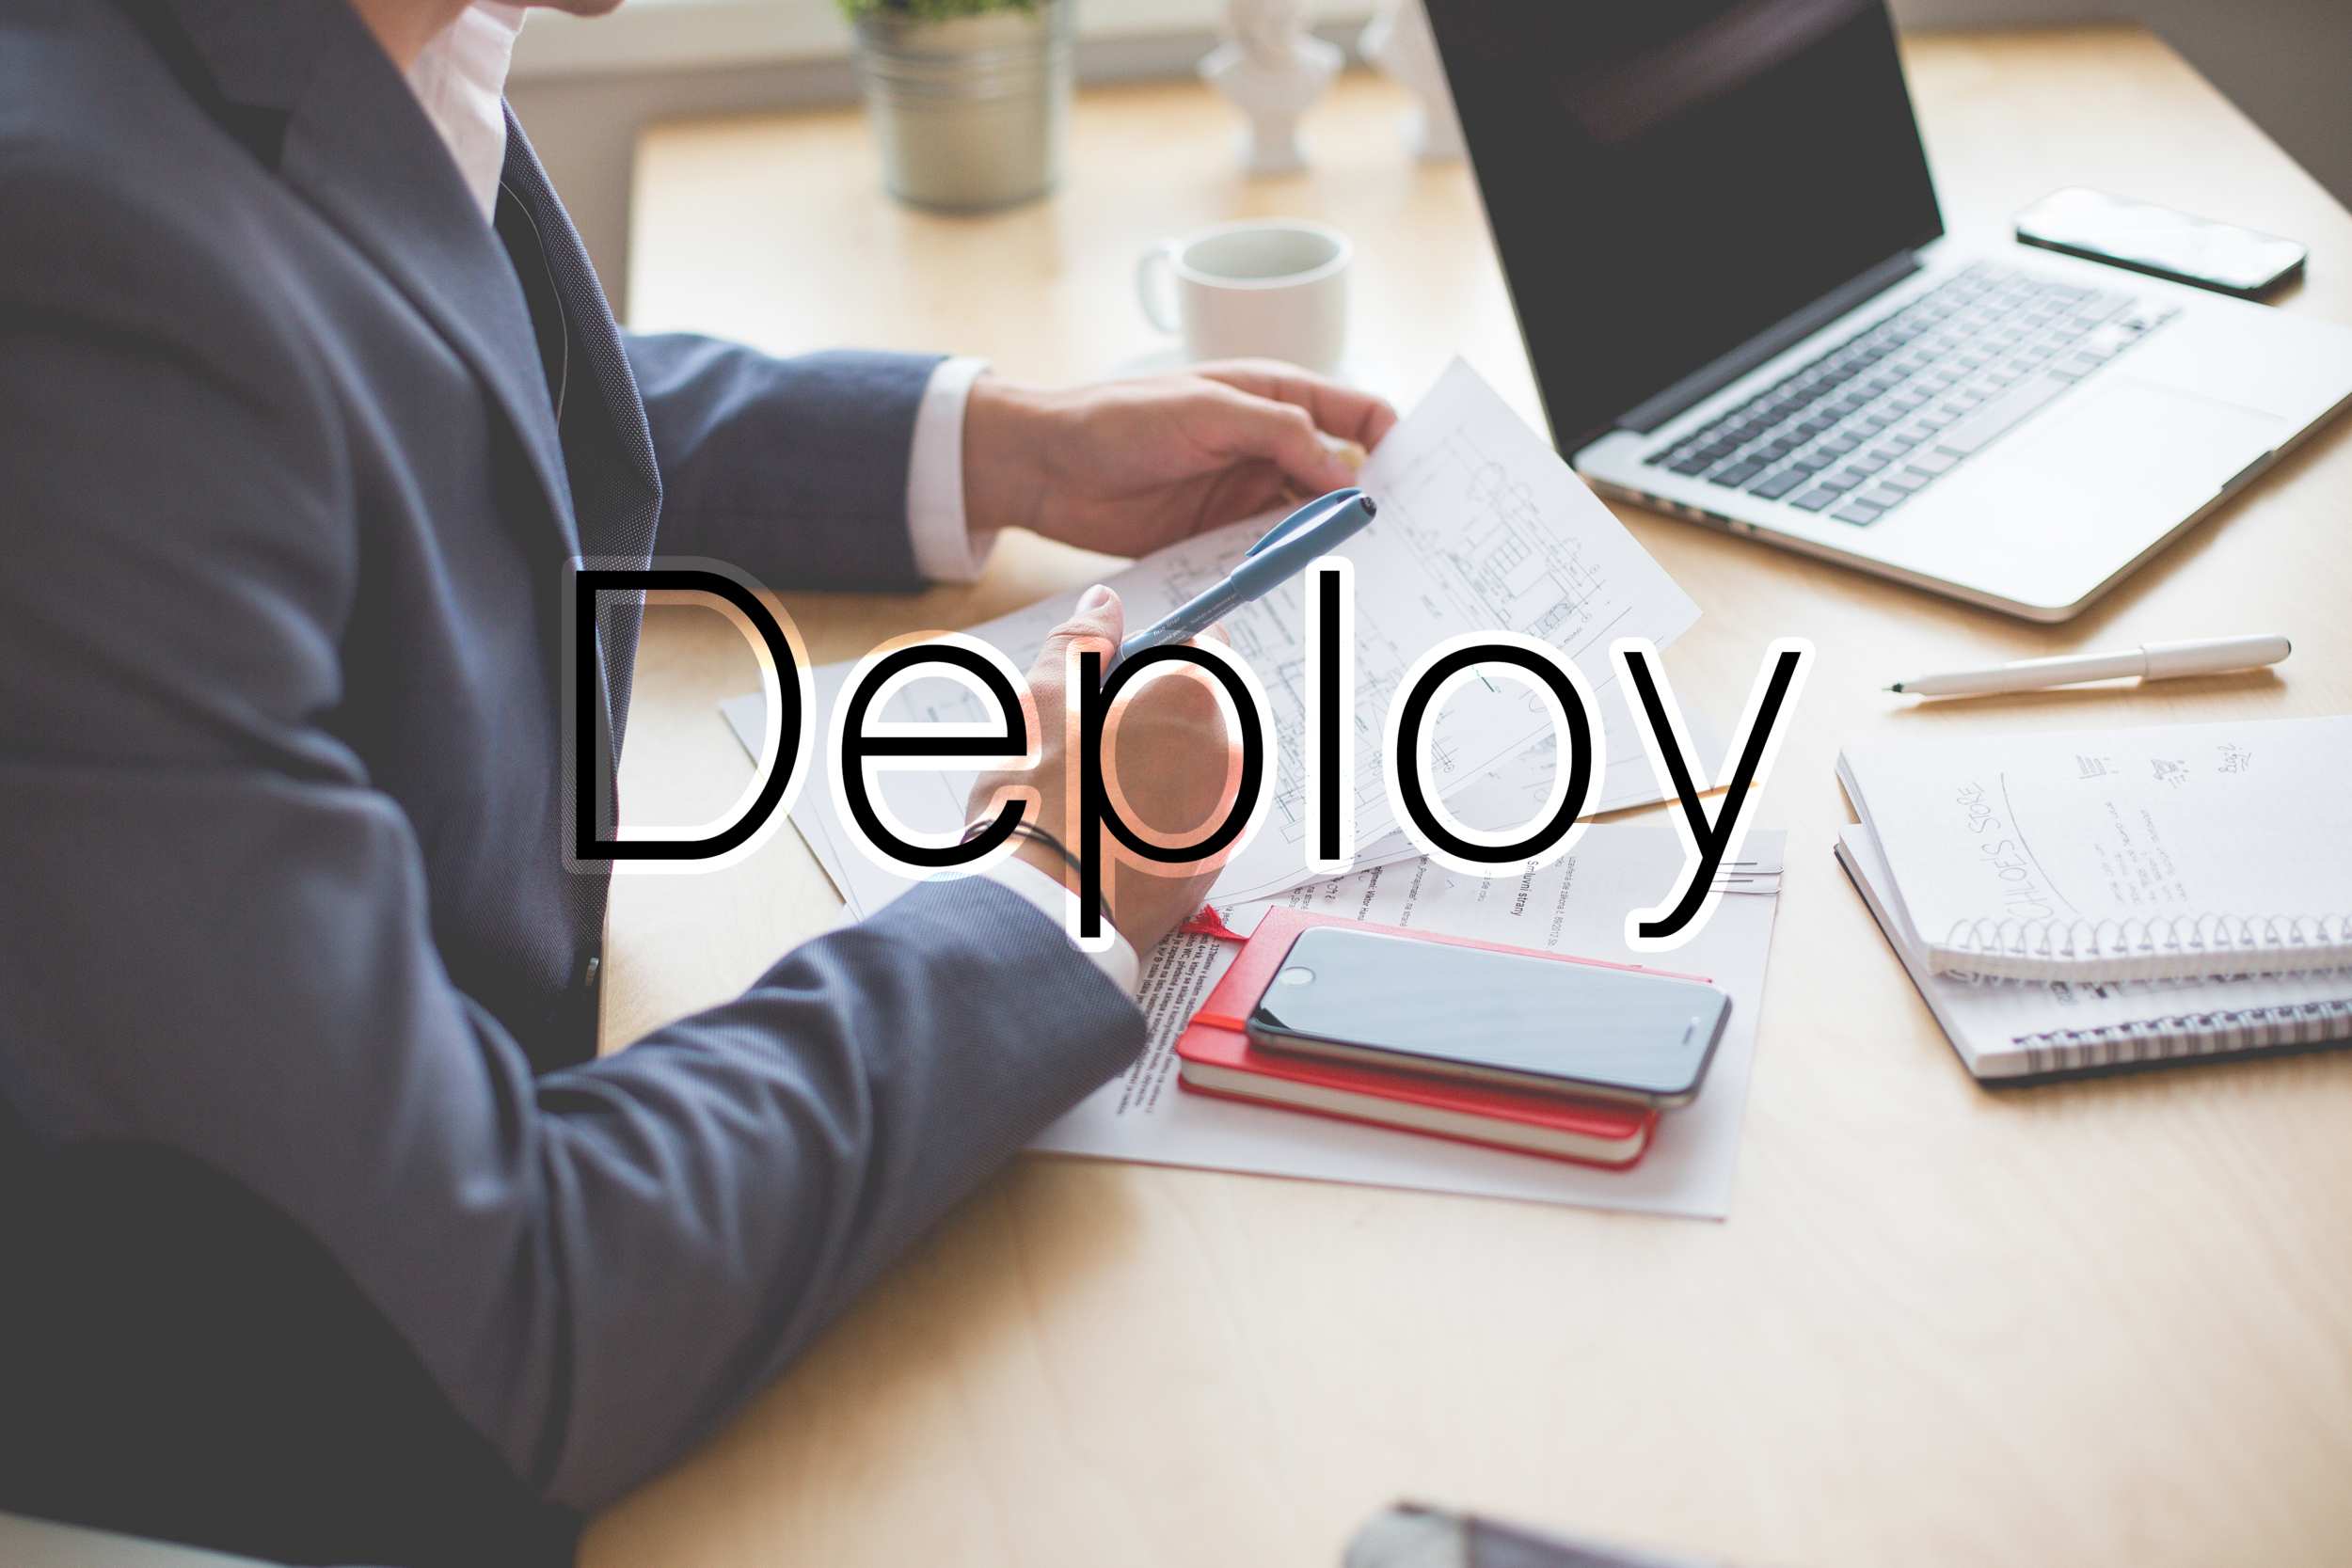 We recognize that a successful deployment consists of following a well-defined plan, and effectively testing and piloting a solution that meets clients expectations, while mitigating risk.